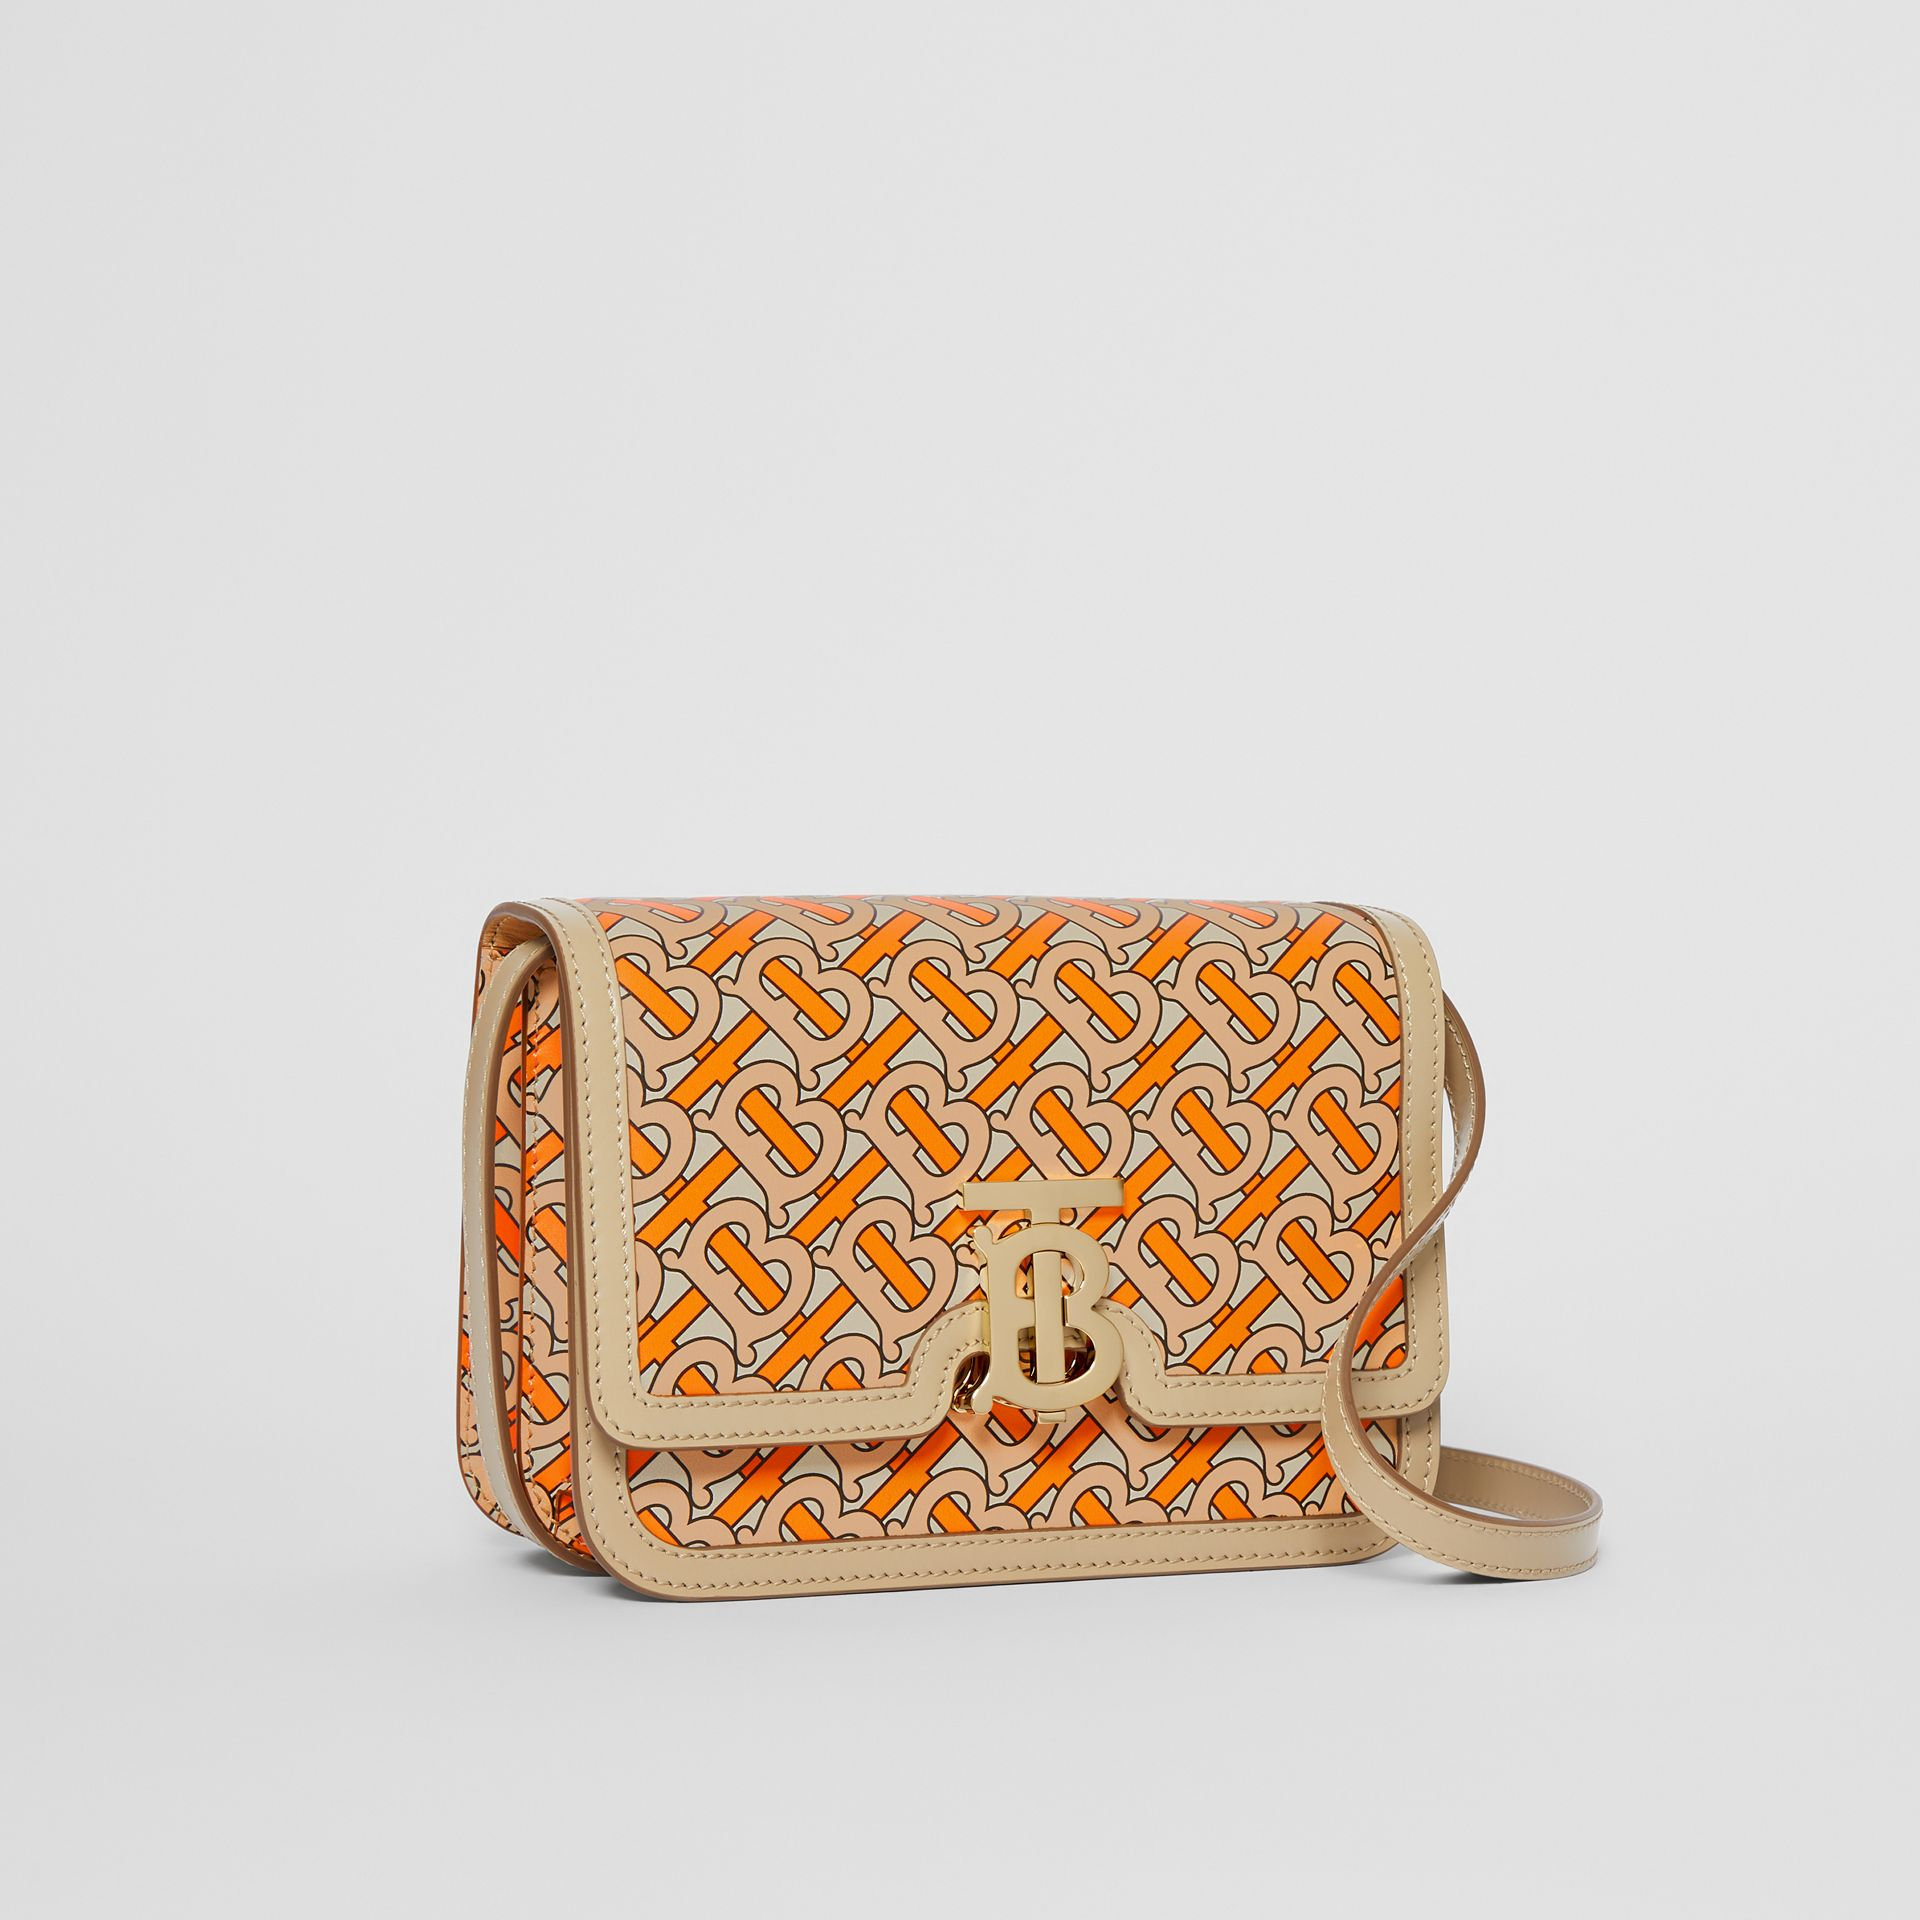 Small Monogram Print Leather TB Bag in Bright Orange - Women | Burberry - gallery image 4